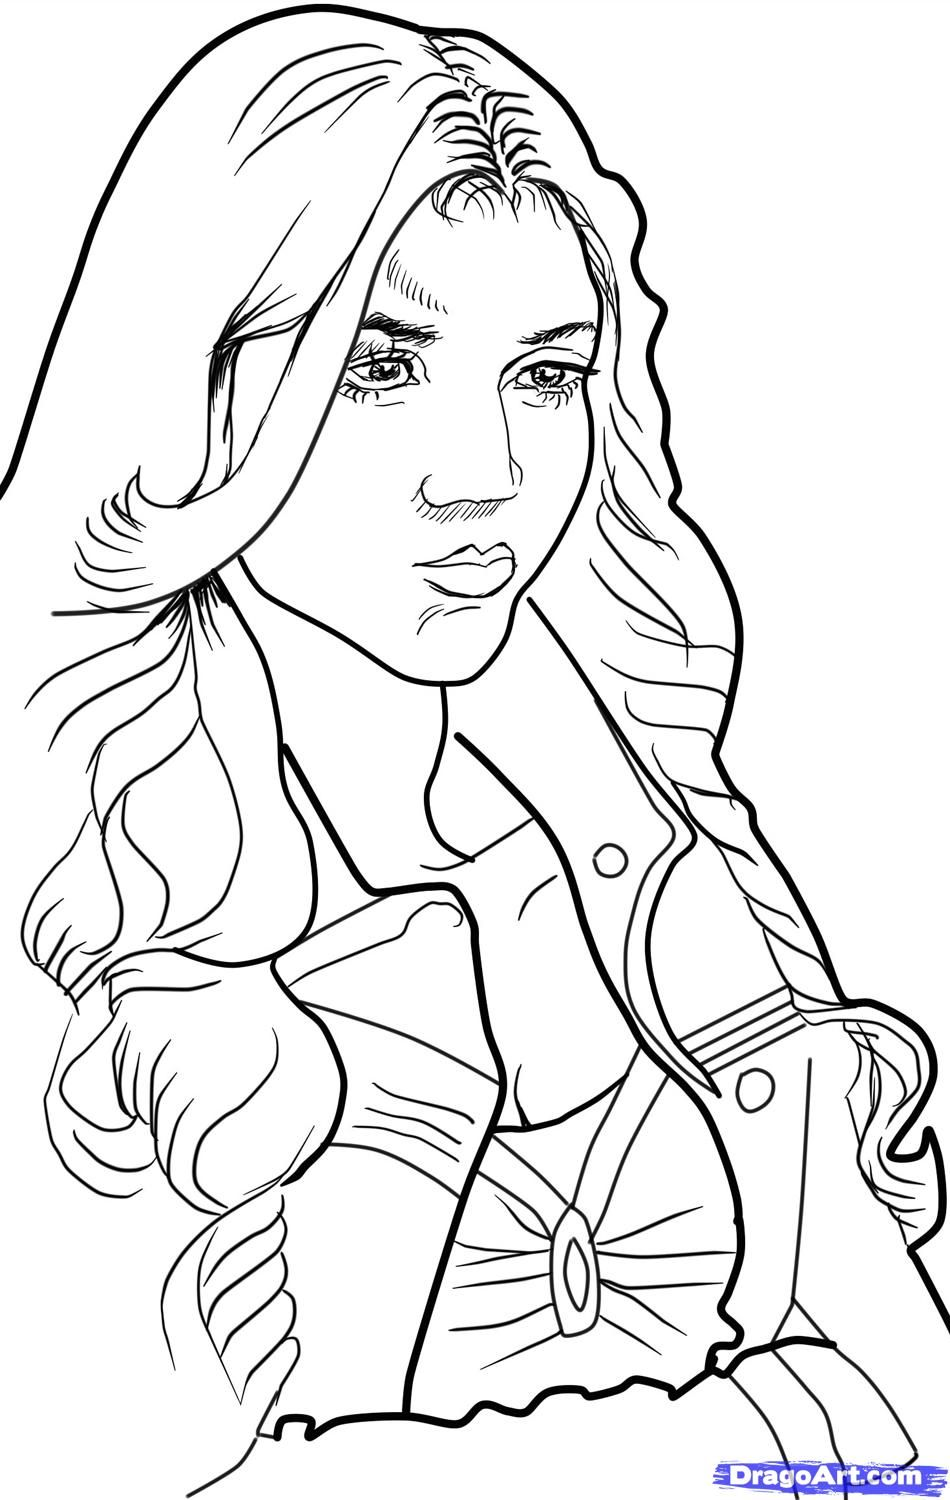 Vampire Diaries Coloring Pages Horse Coloring Pages Drawings